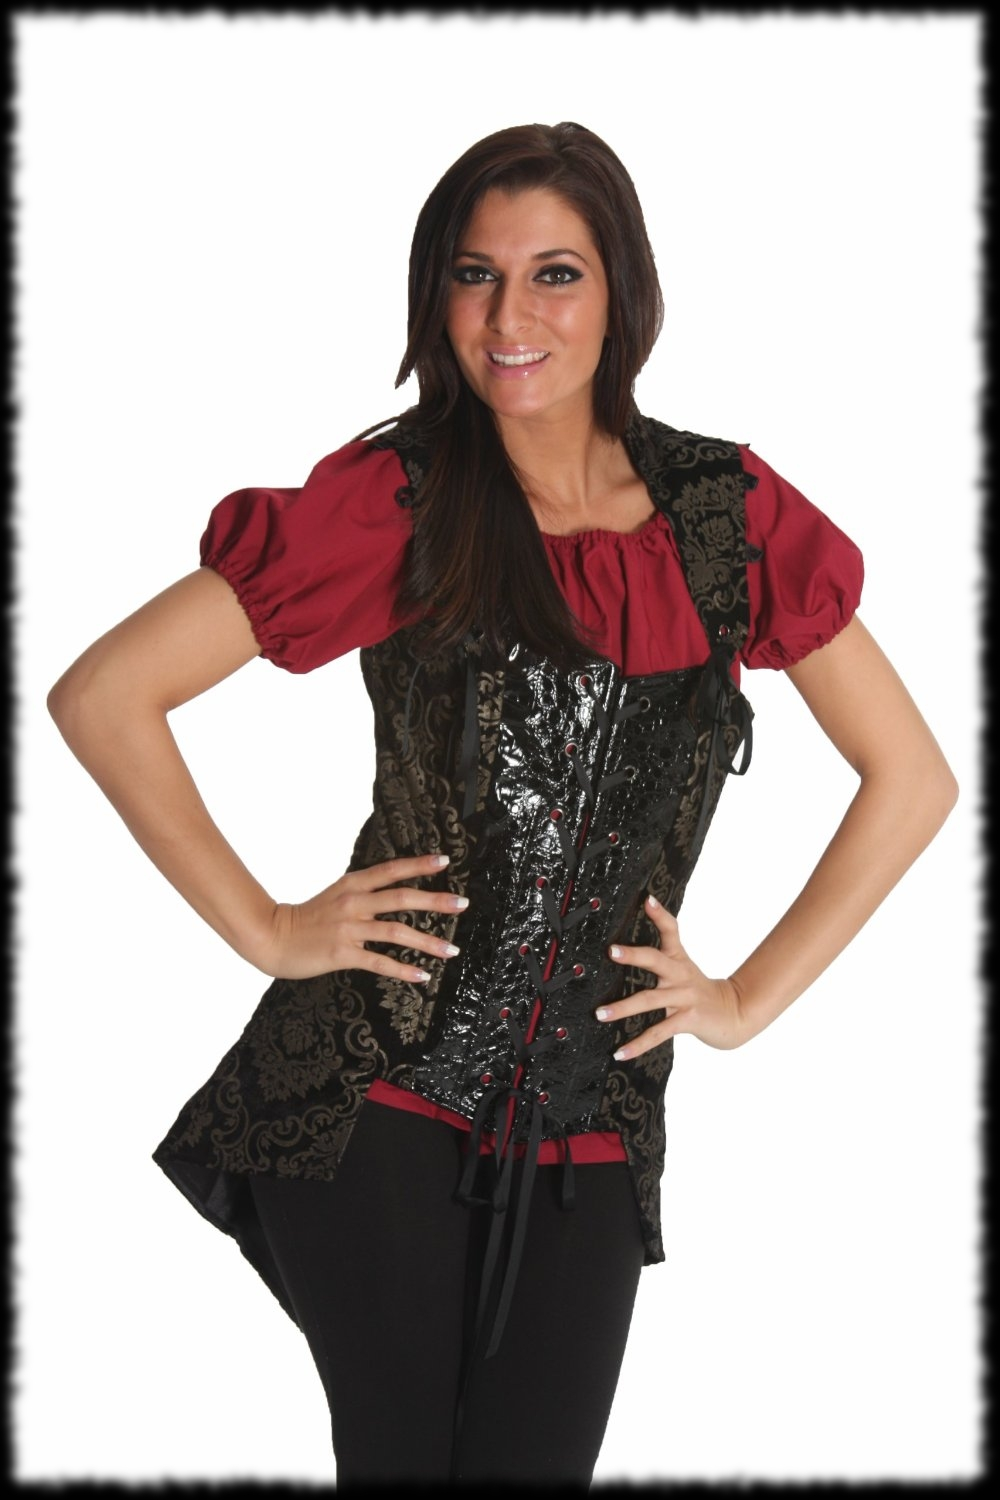 Halloween Costume Ideas Deluxe Lady Pirate Costume Corset with Removable Sleaves